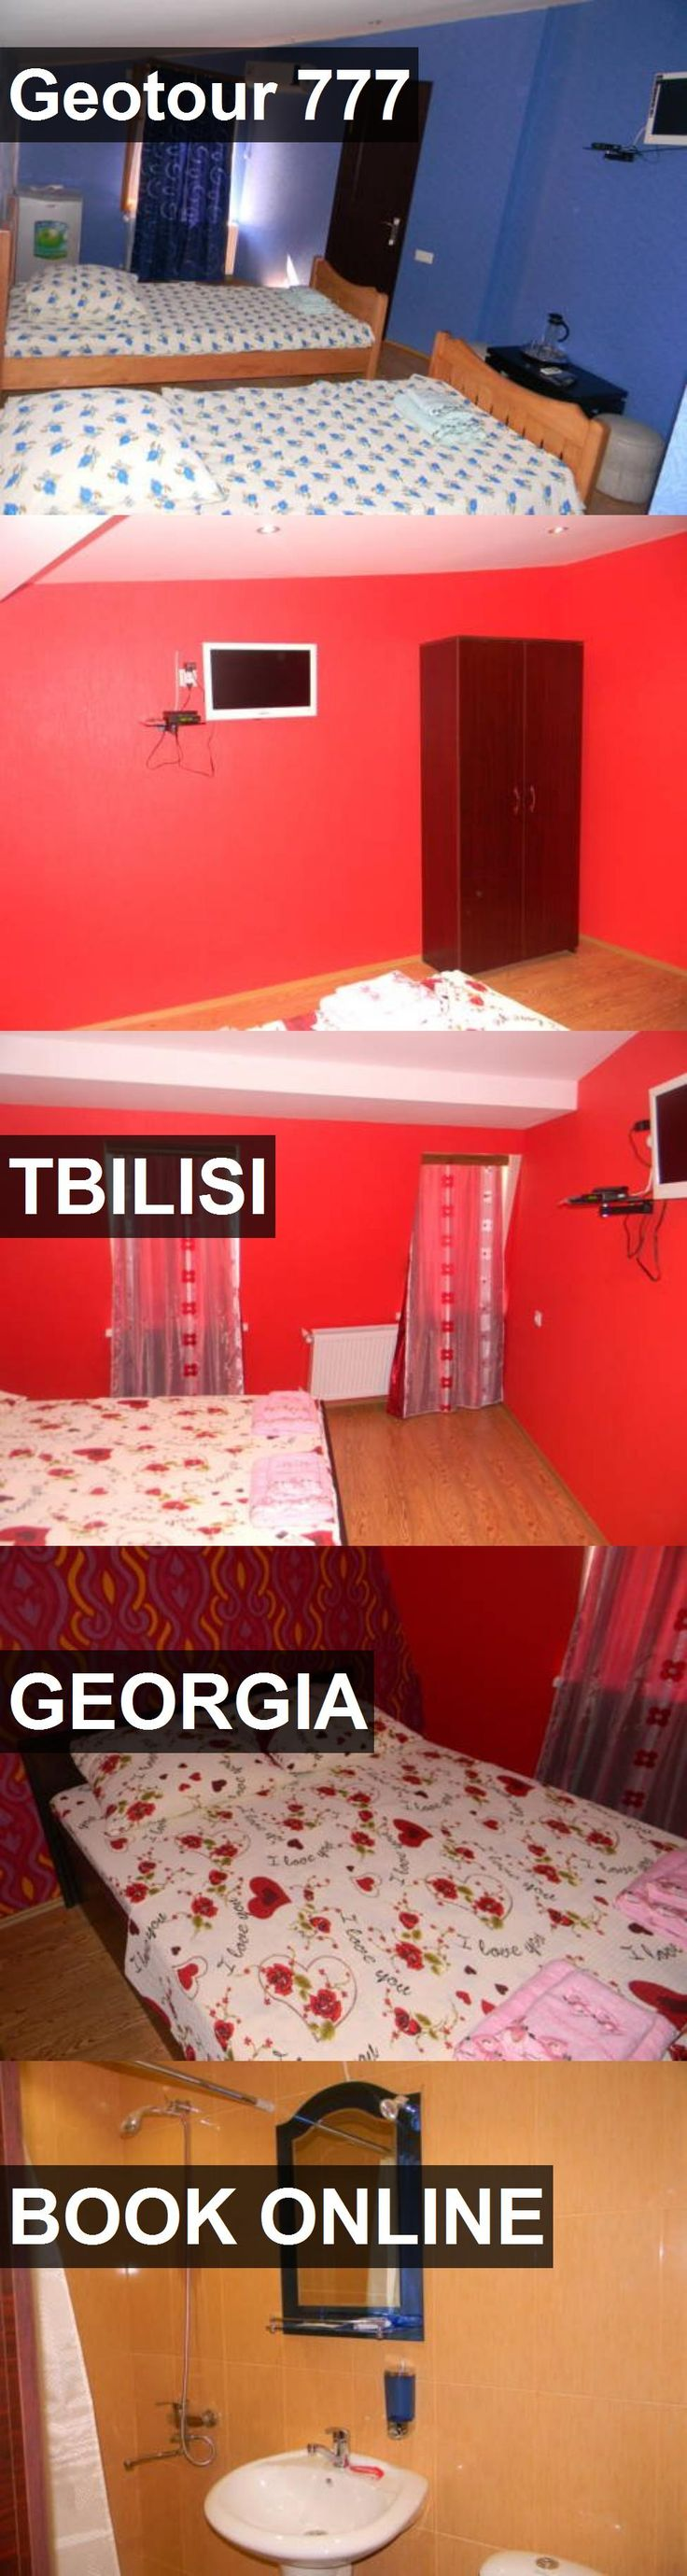 Hotel Geotour 777 in Tbilisi, Georgia. For more information, photos, reviews and best prices please follow the link. #Georgia #Tbilisi #travel #vacation #hotel